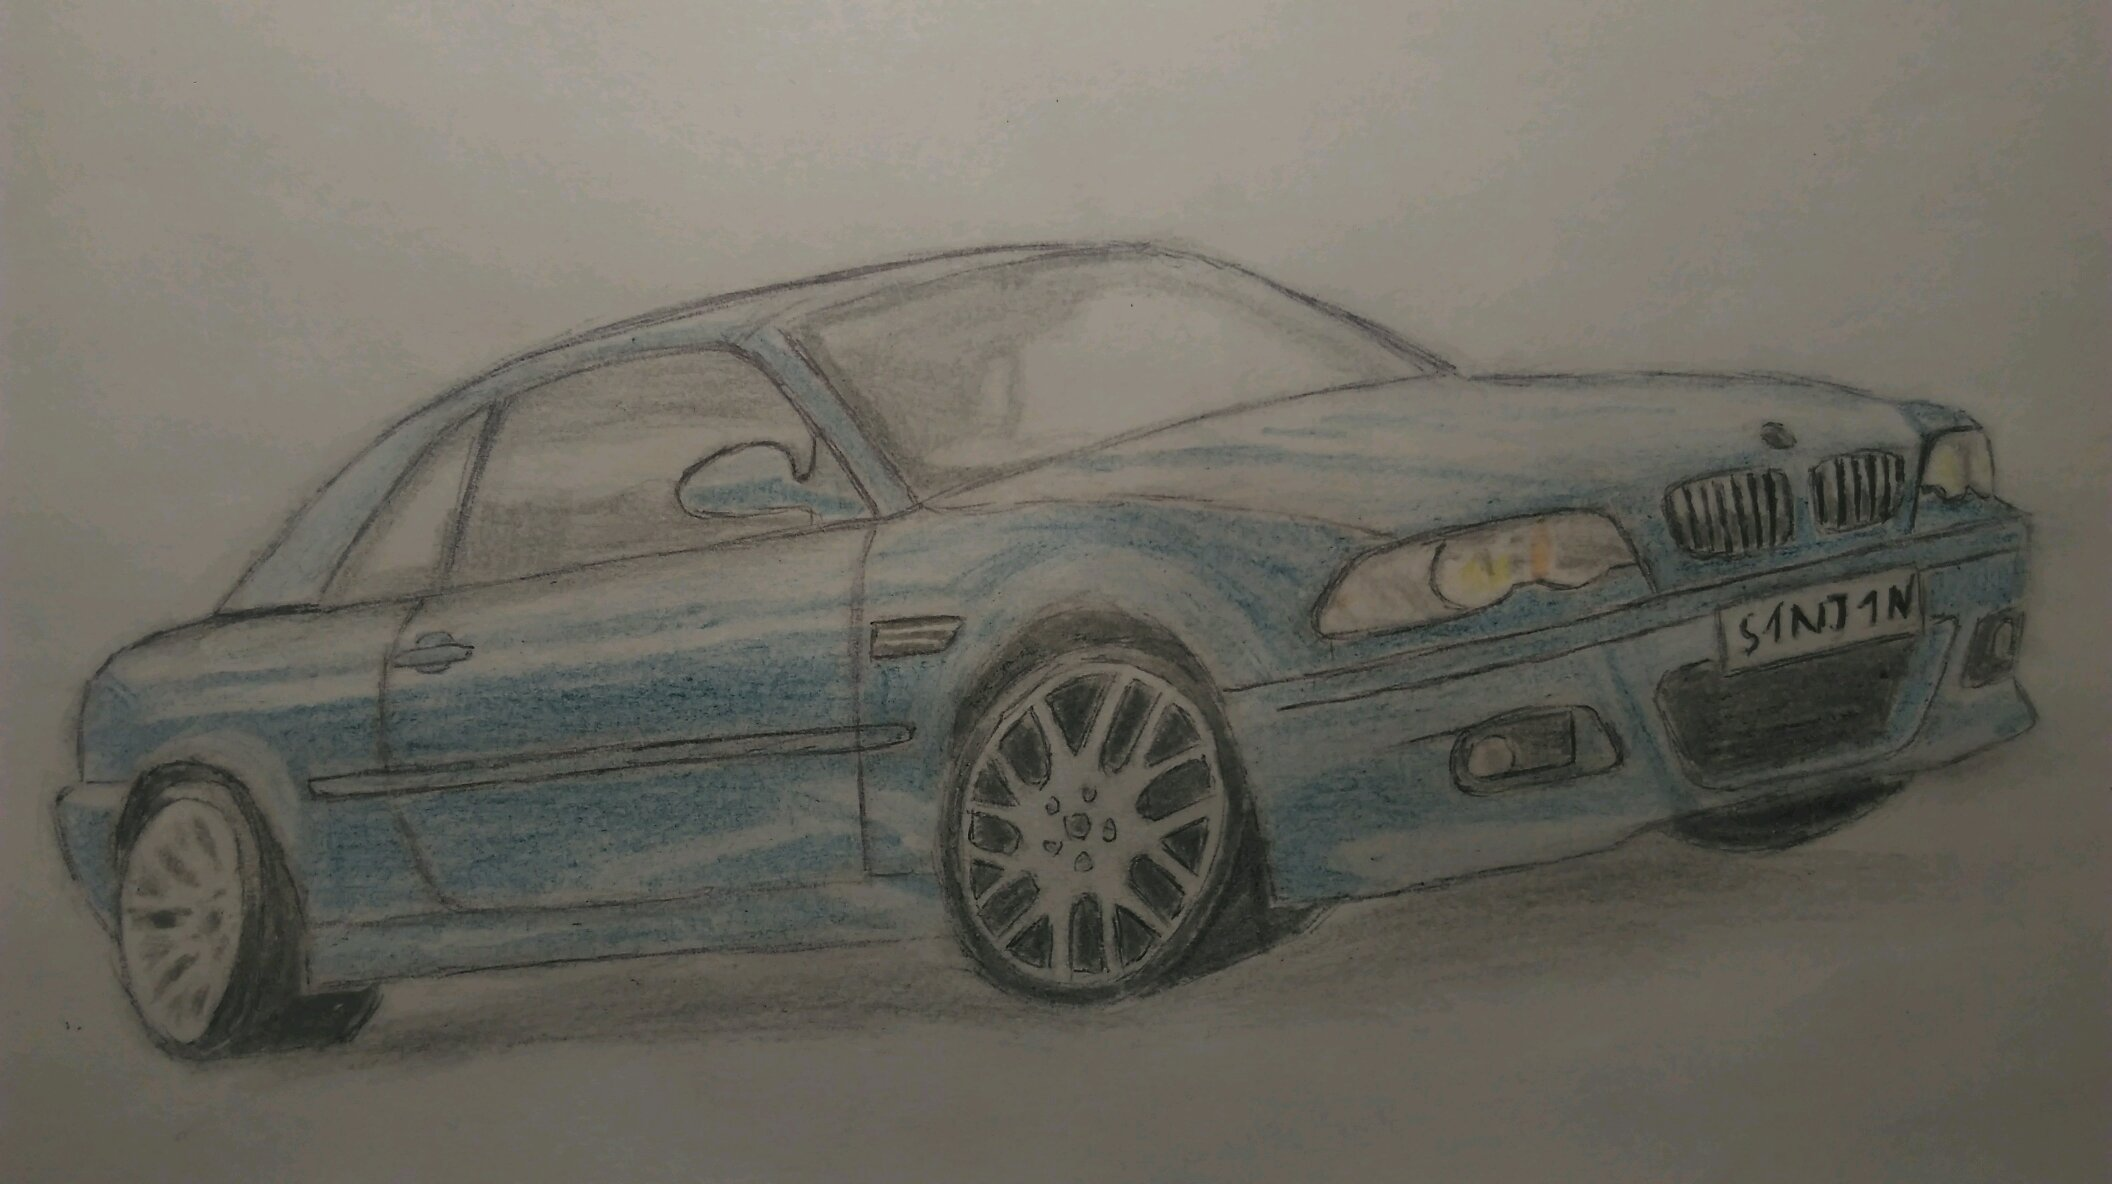 2001 Bmw M3 E46 Convertible Drawing